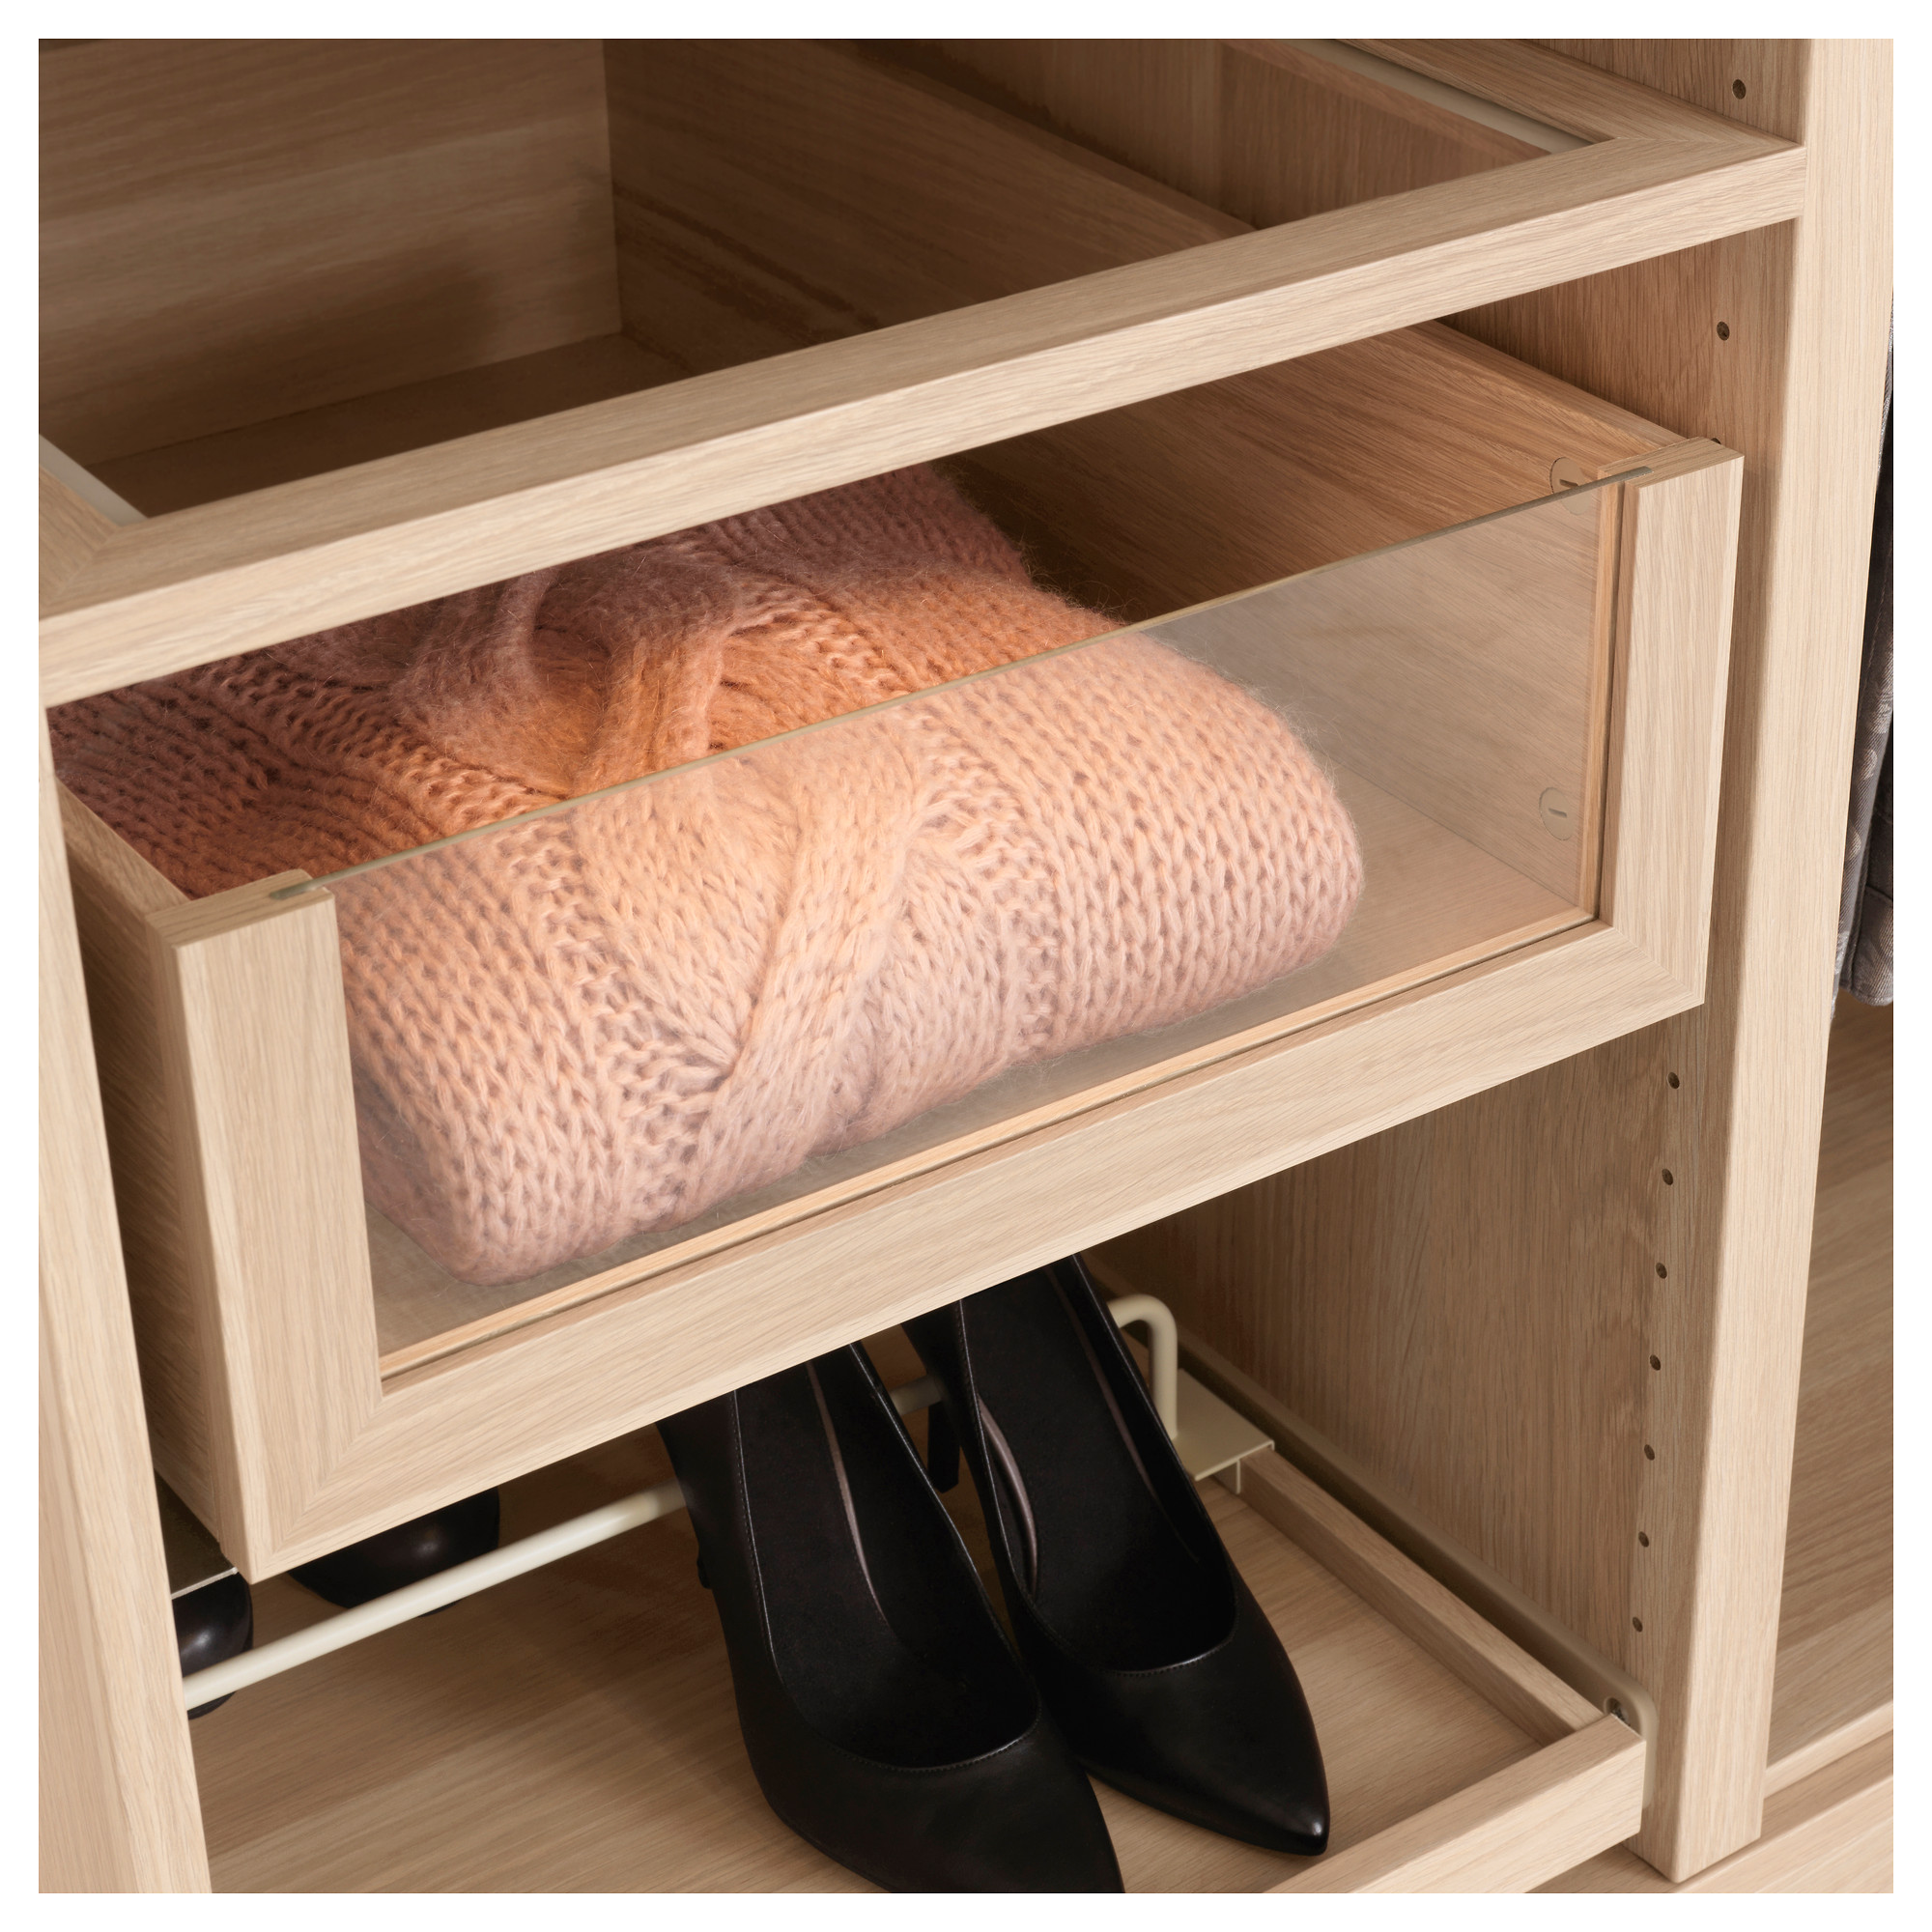 Materials Pax Wardrobe Komplement Drawers And Sliding Hangers Wood Hardware Description